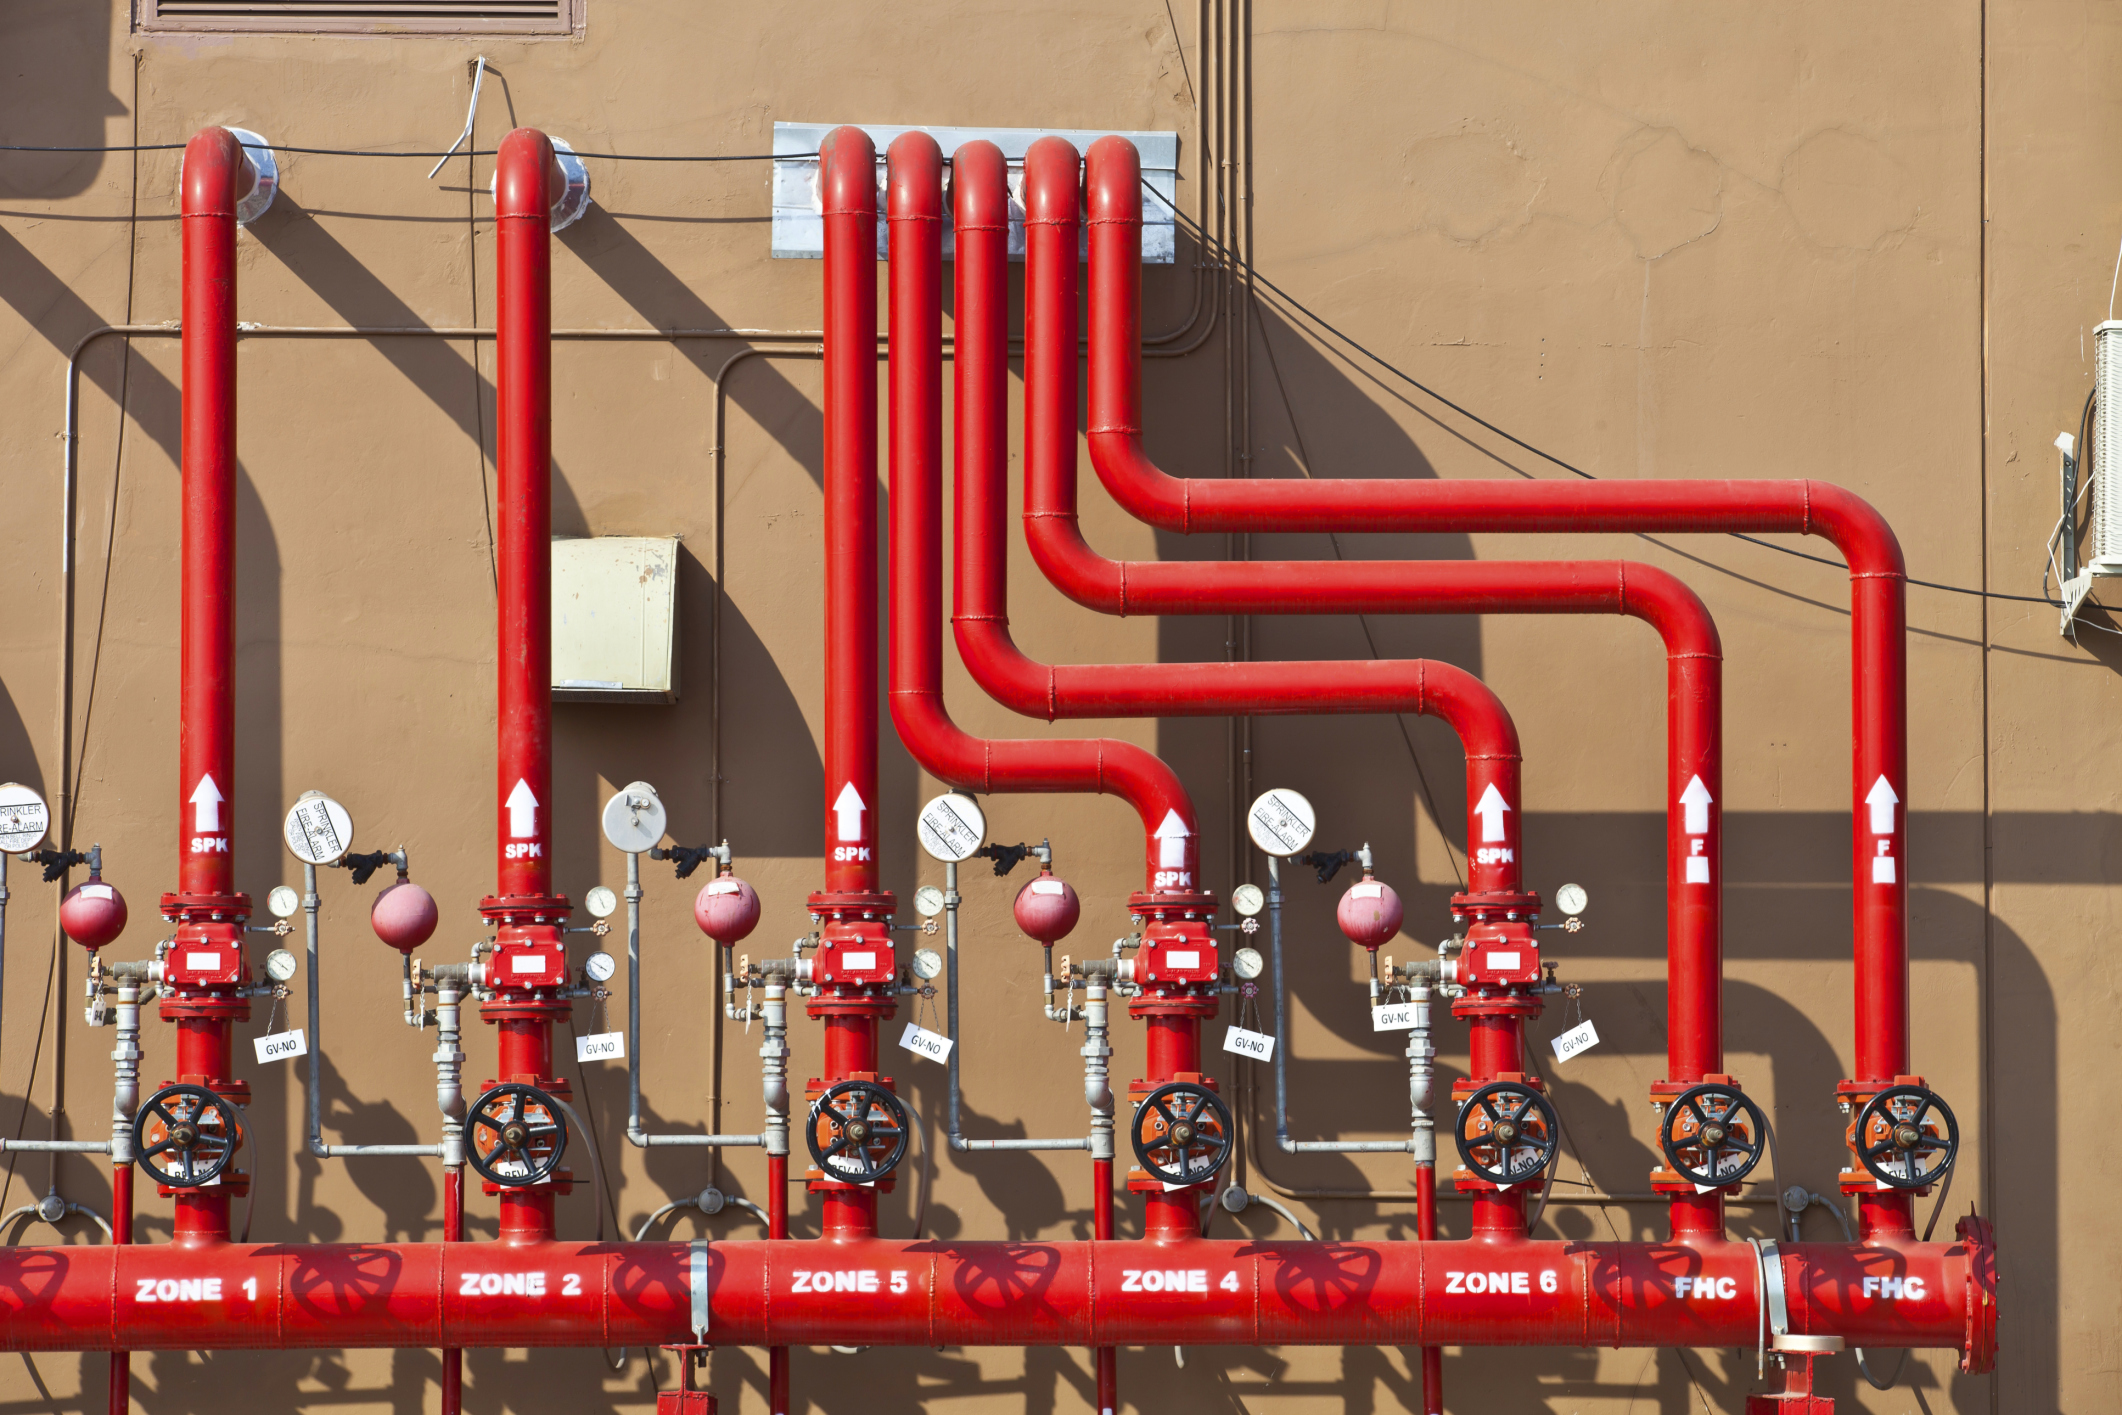 Commercial Fire Sprinklers: Which to Choose - Fireline